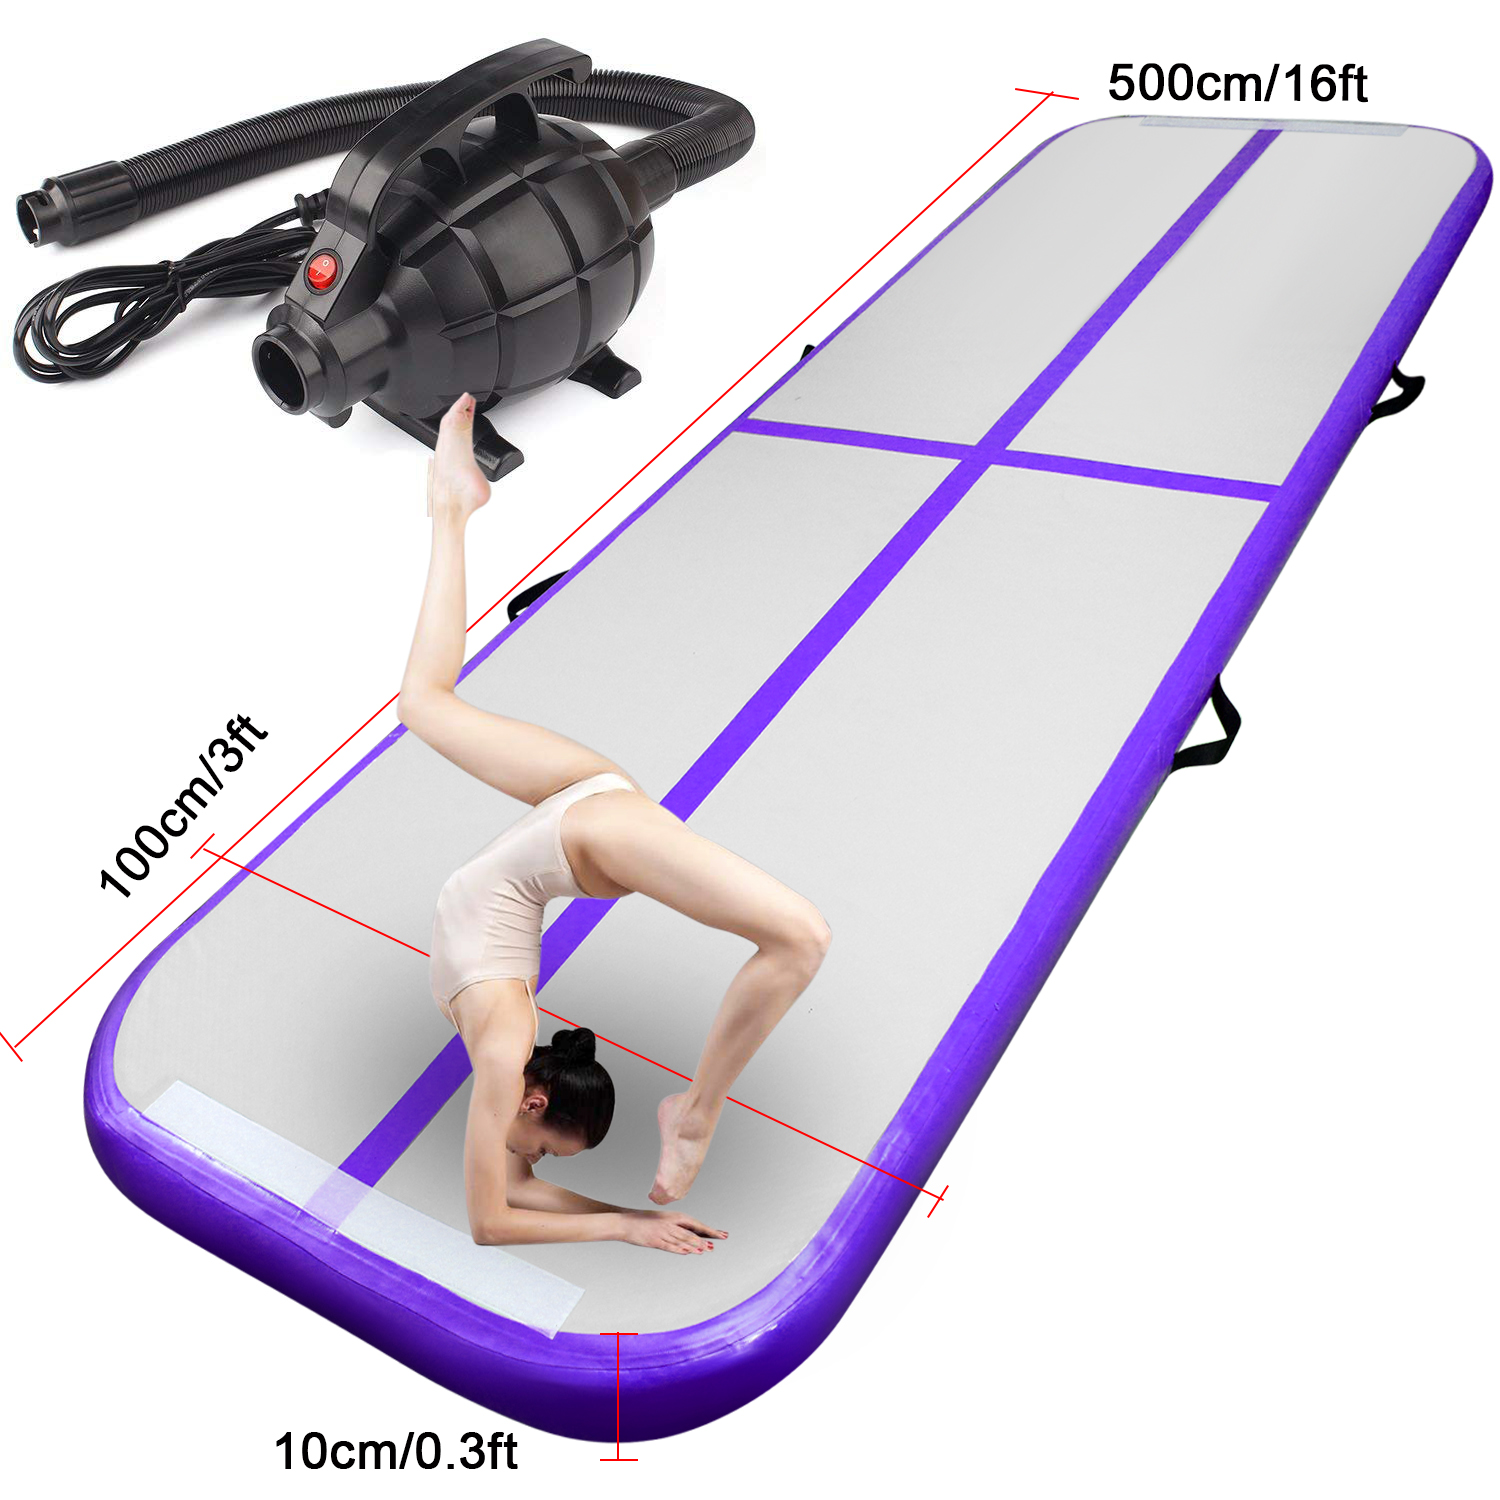 Purple 5m/16ft Inflatable Air Track Tumbling Gymnastic Mat Floor Home Training W/ Pump Fbsport